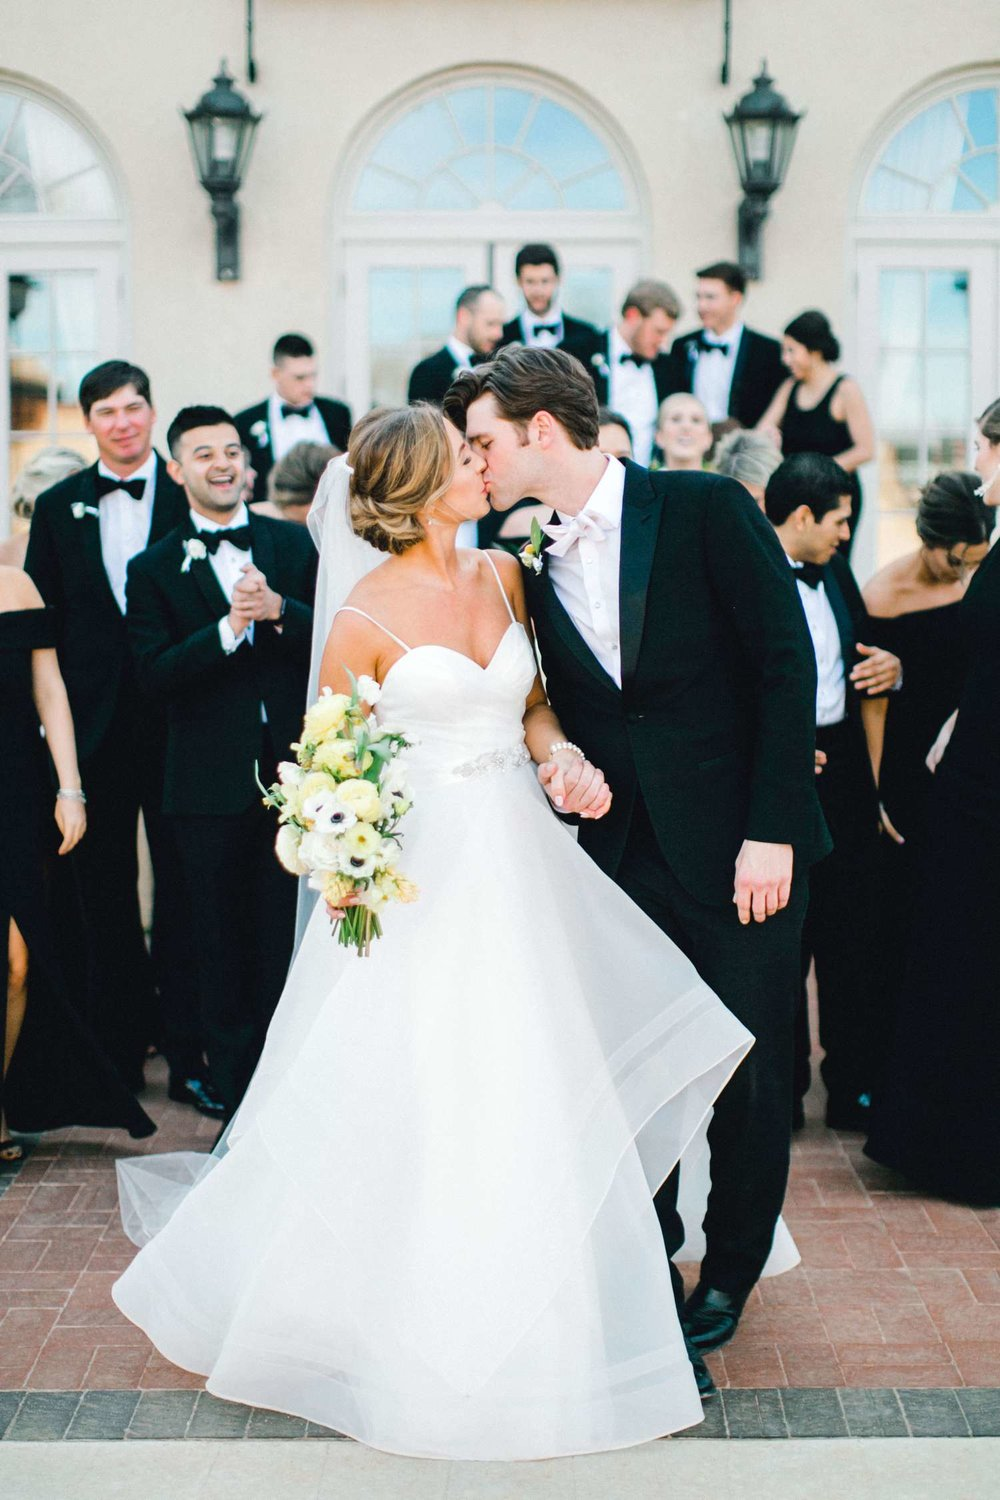 MARLEE+LLOYD+MORGAN+ALLEEJ+TEXAS+TECH+MERKET+ALUMNI+WEDDINGS+LUBBOCK+WEST+TABLE+CLASSIC+SPAIN_0108.jpg